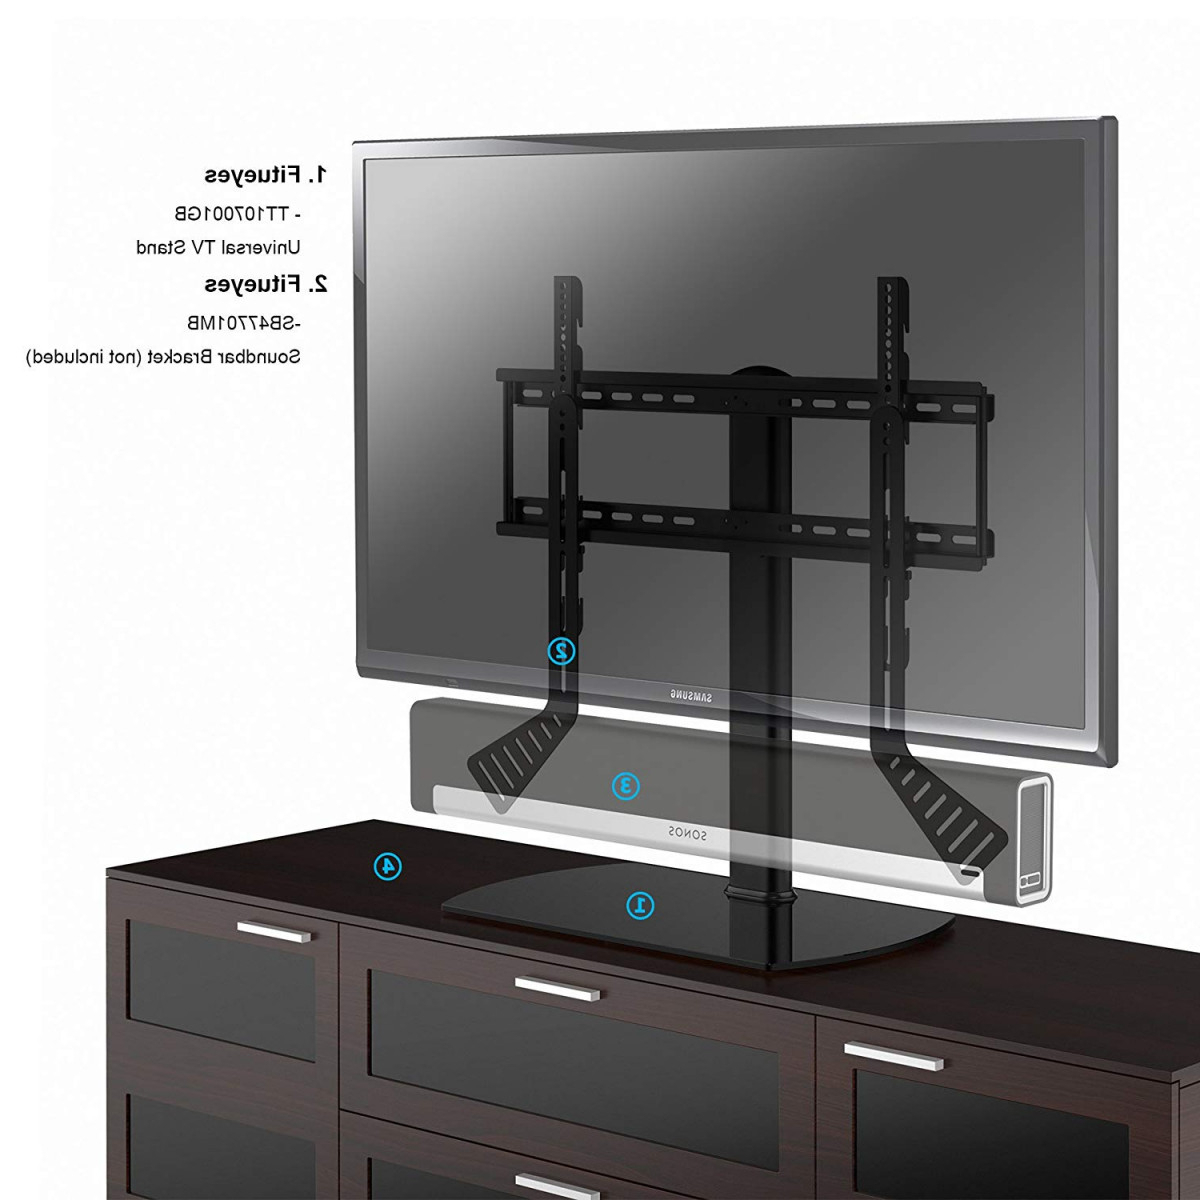 Sonos Tv Stand Chic Tv Desk Stand New Gaming Tv Stand Fresh Gamer Pertaining To Popular Sonos Tv Stands (Gallery 20 of 20)